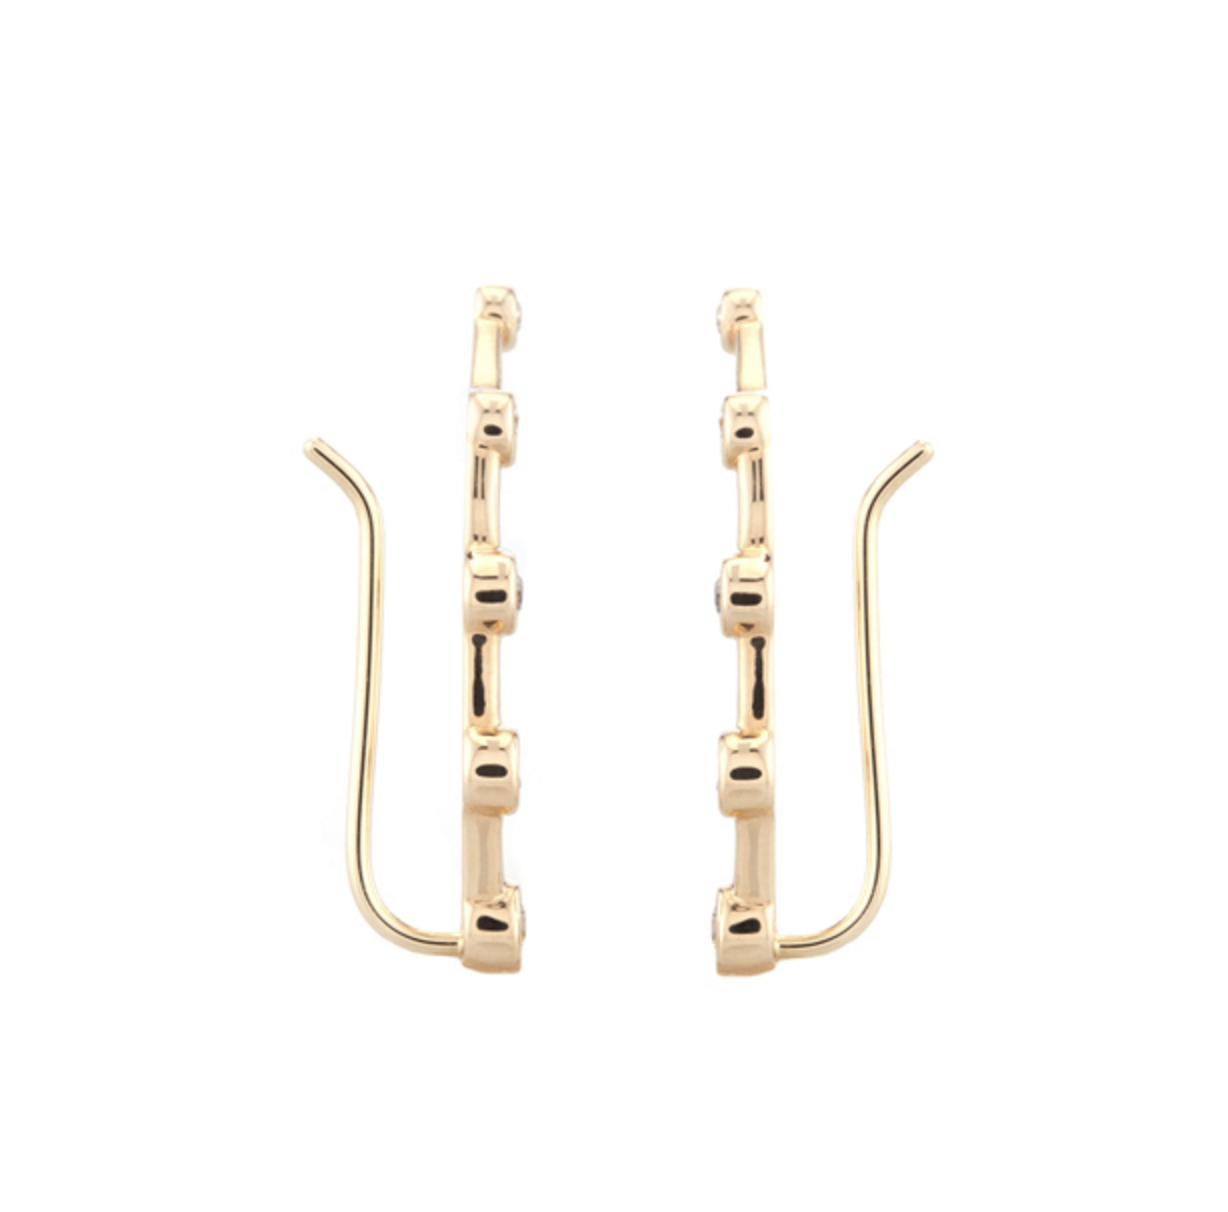 Vale 14k Moonlet Ear Crawlers